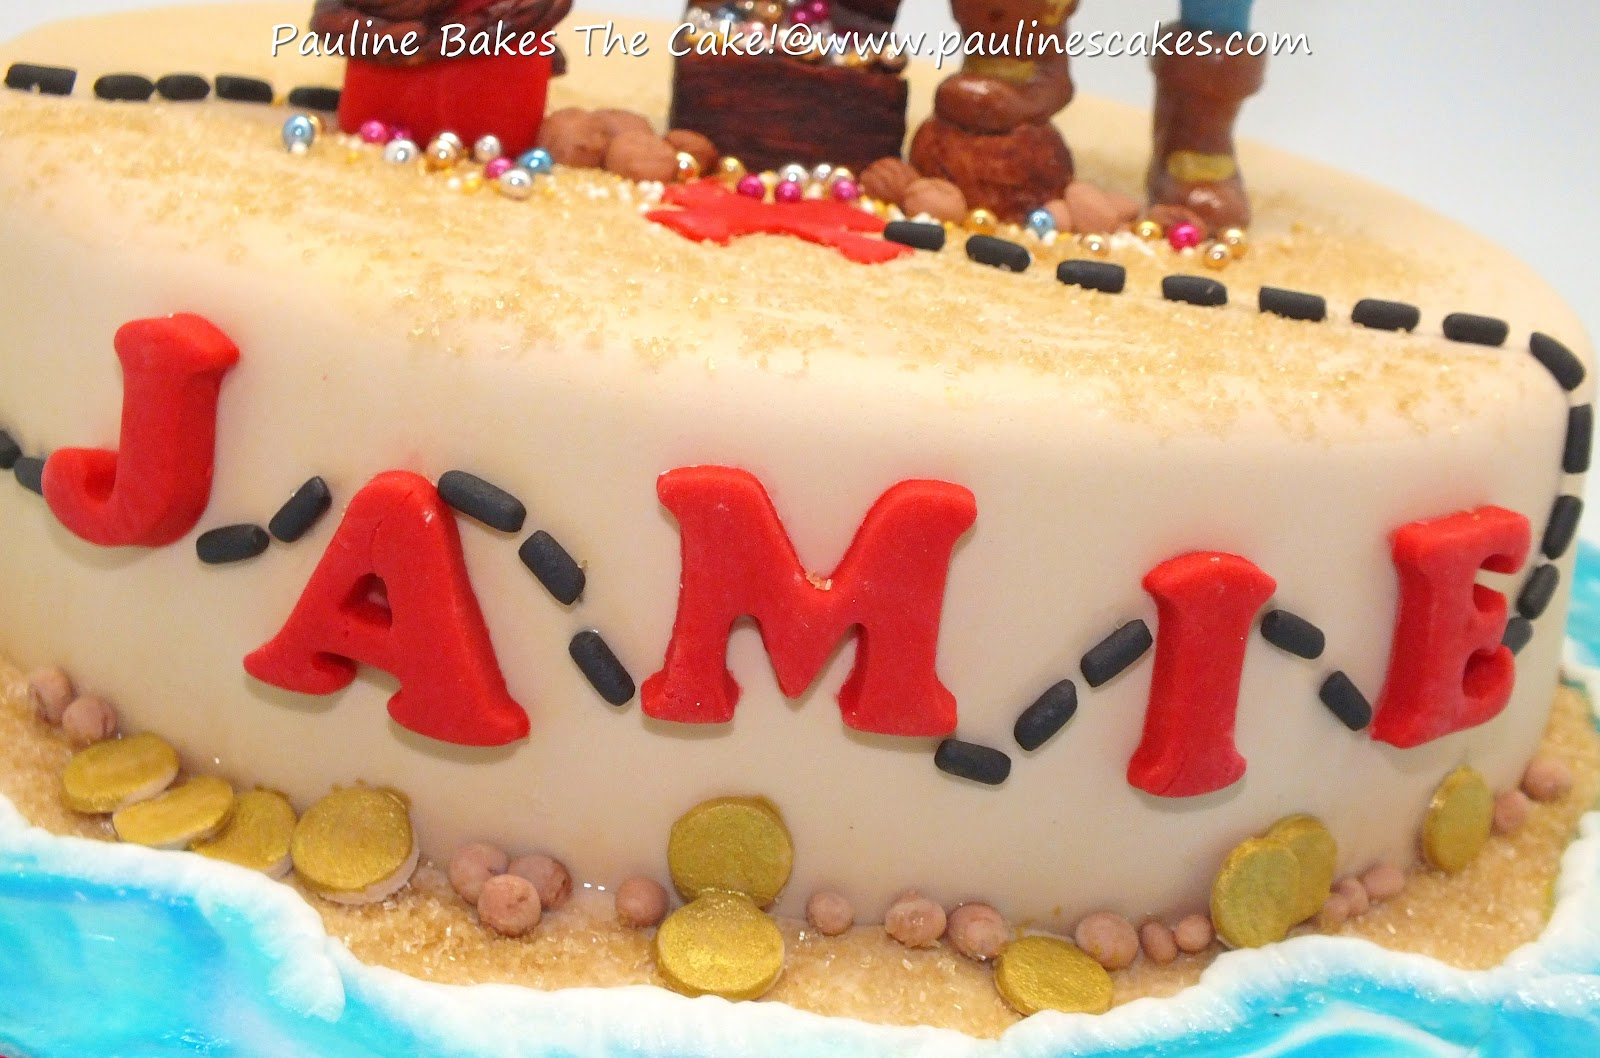 Pauline Bakes The Cake Jamie S Quot Jake The Pirate